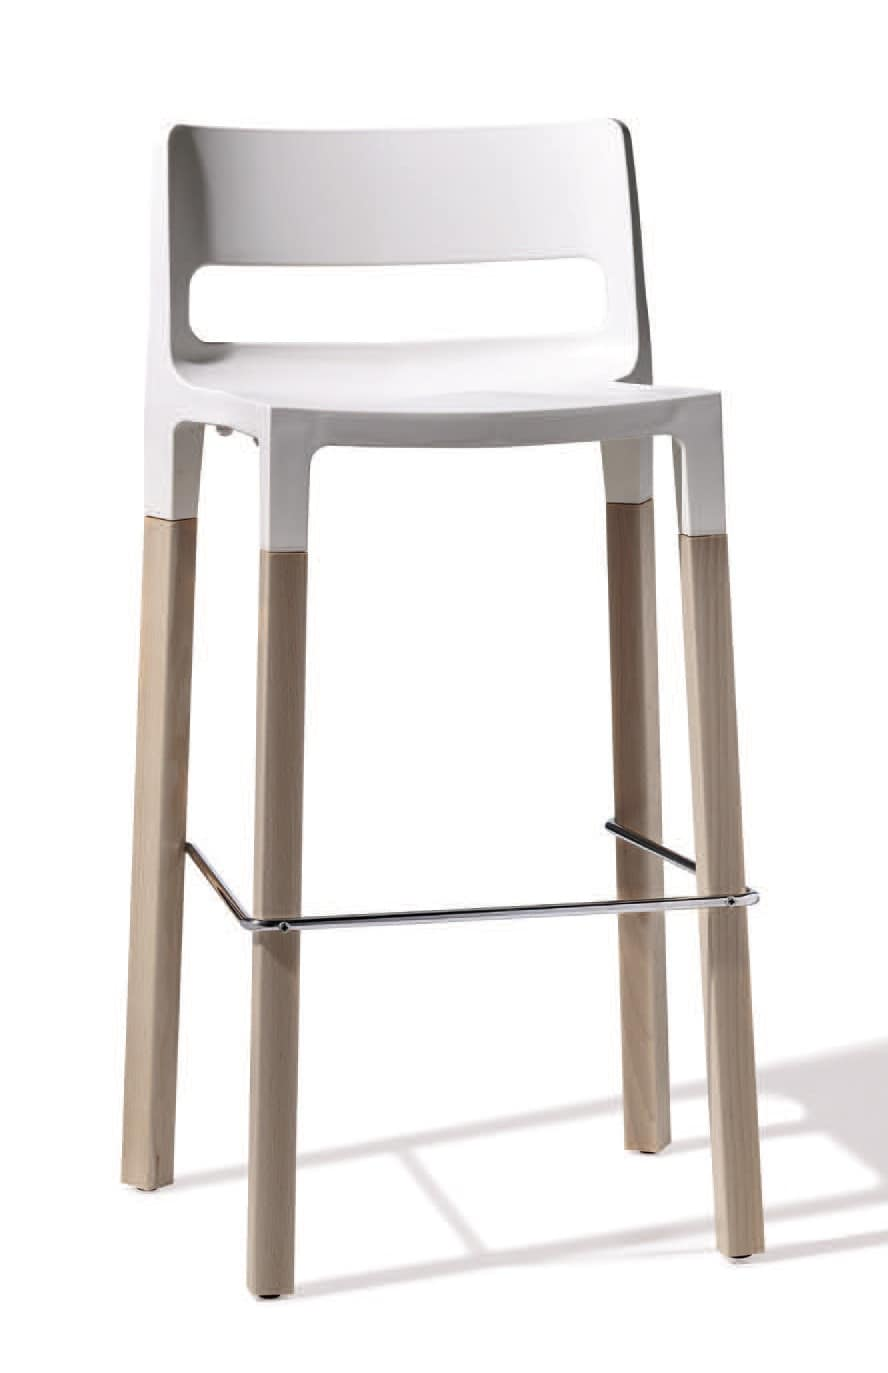 SG 2818, Stool in technopolymer with glass fiber